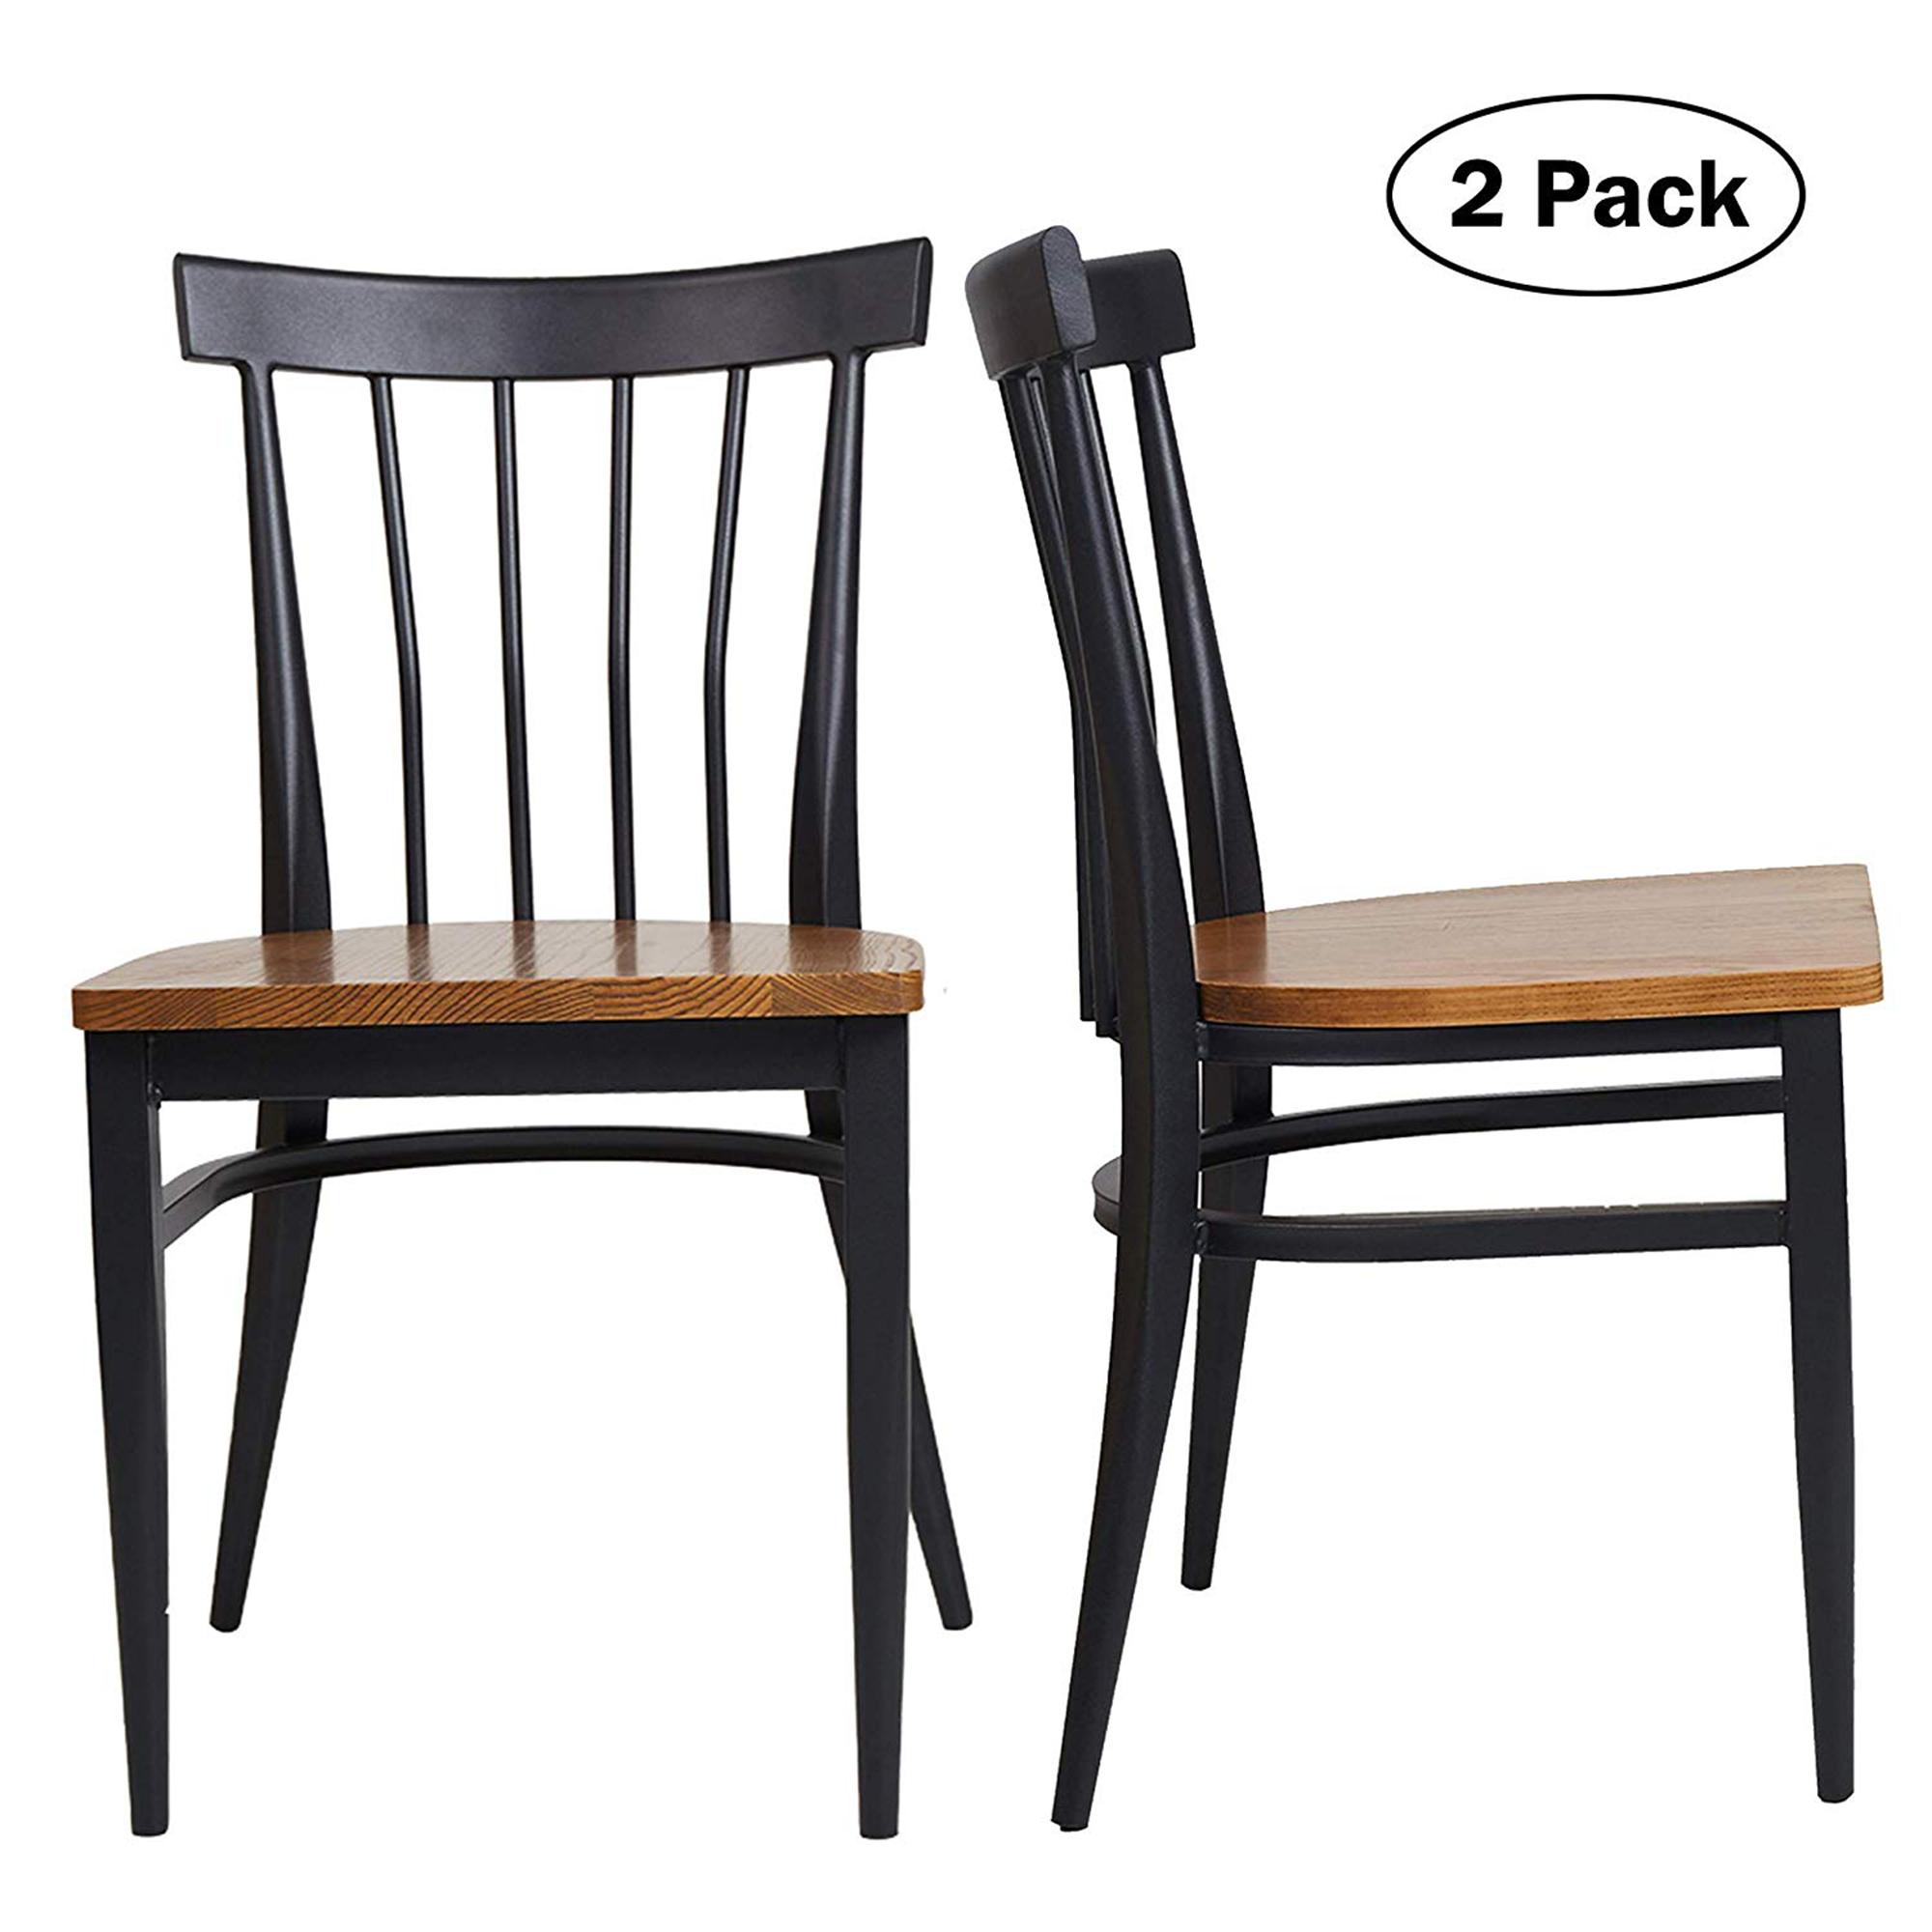 KARMAS PRODUCT Set of 2 Dining Side Chairs - Natural Wood Seat and Sturdy Iron Frame Simple Kitchen Restaurant Chairs for Dining Room Cafe Bistro, Ergonomic Design,Comb Back